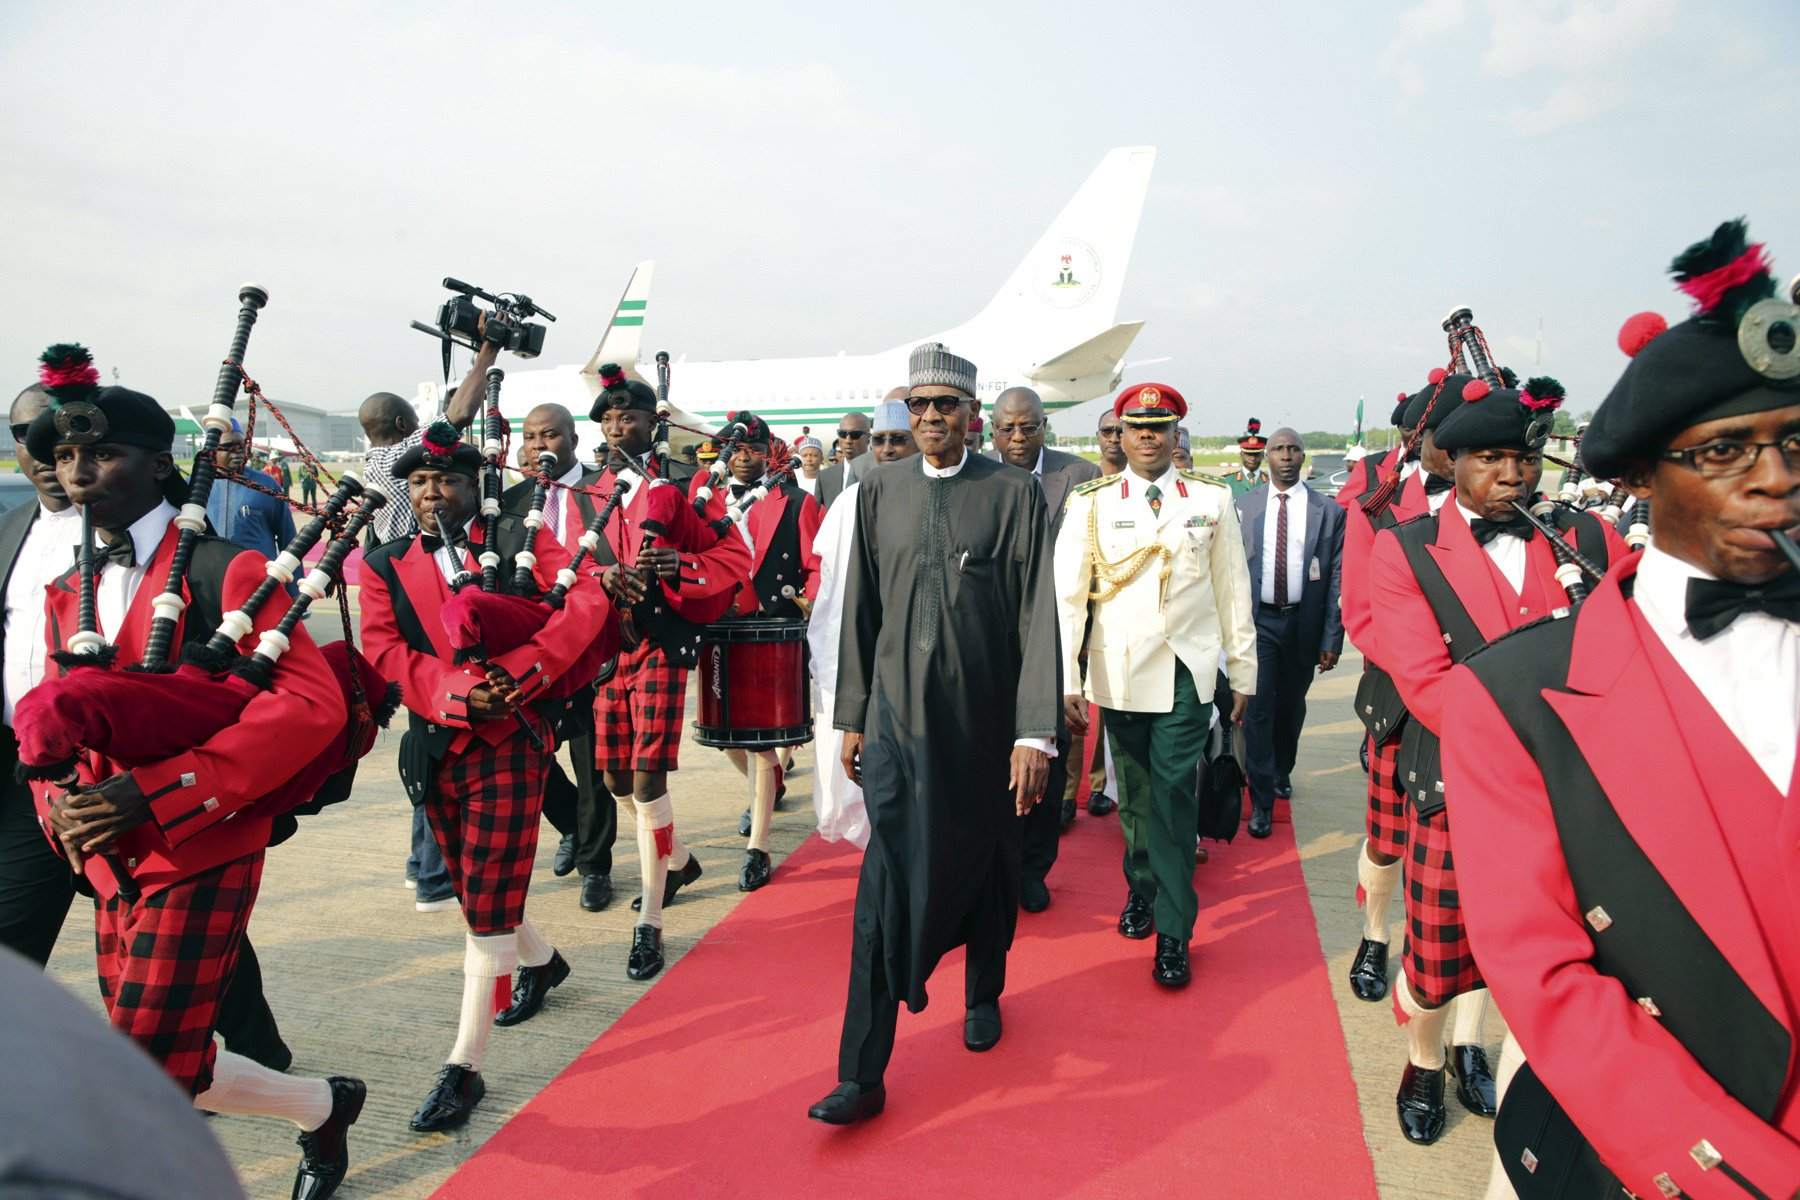 Nigerian president vows to step up fight against Boko Haram